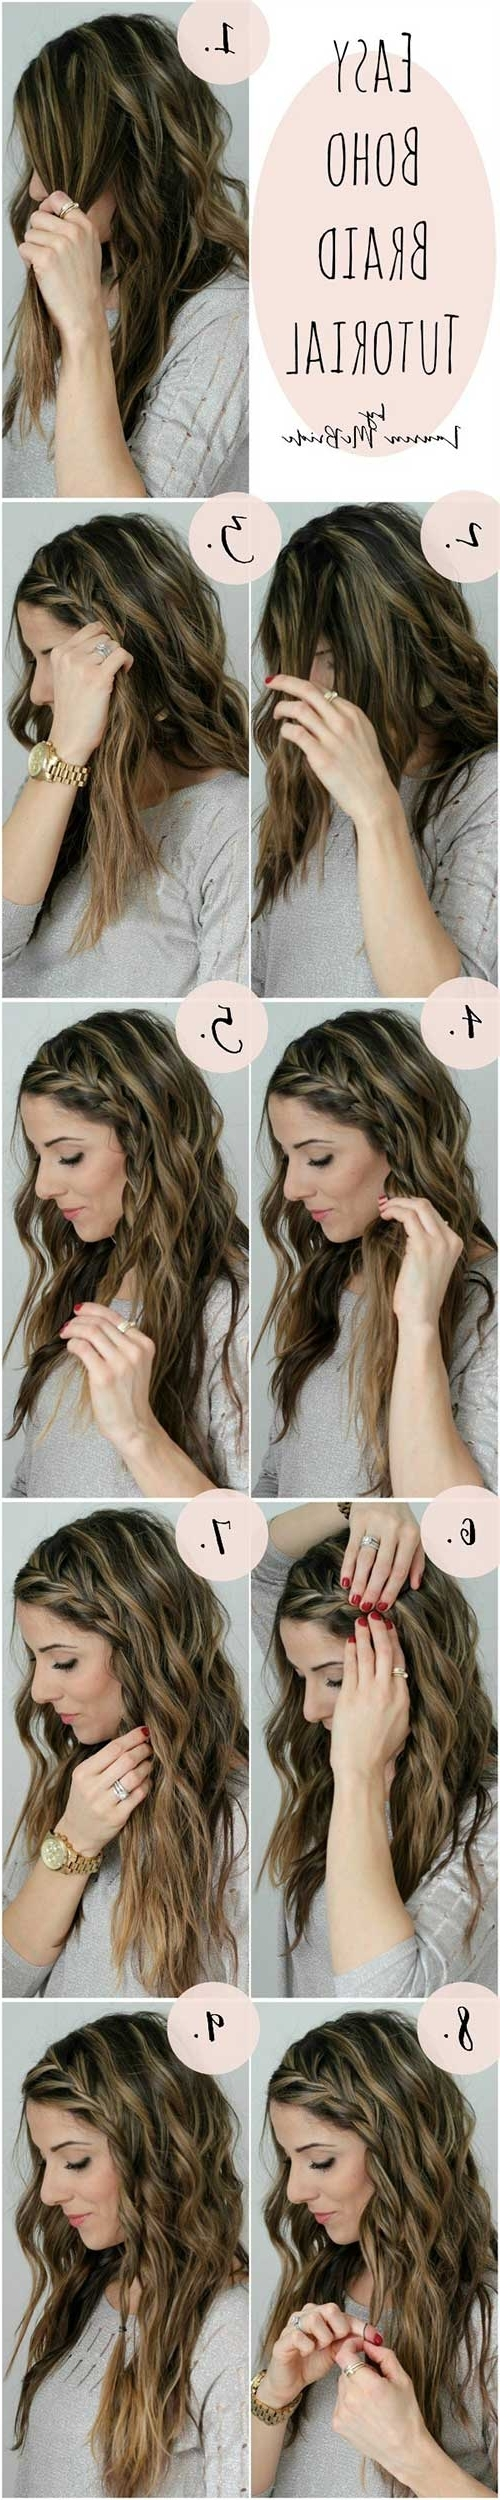 20 Awesome Hairstyles For Girls With Long Hair Regarding Most Popular Flowy Side Braid Hairstyles (View 1 of 15)